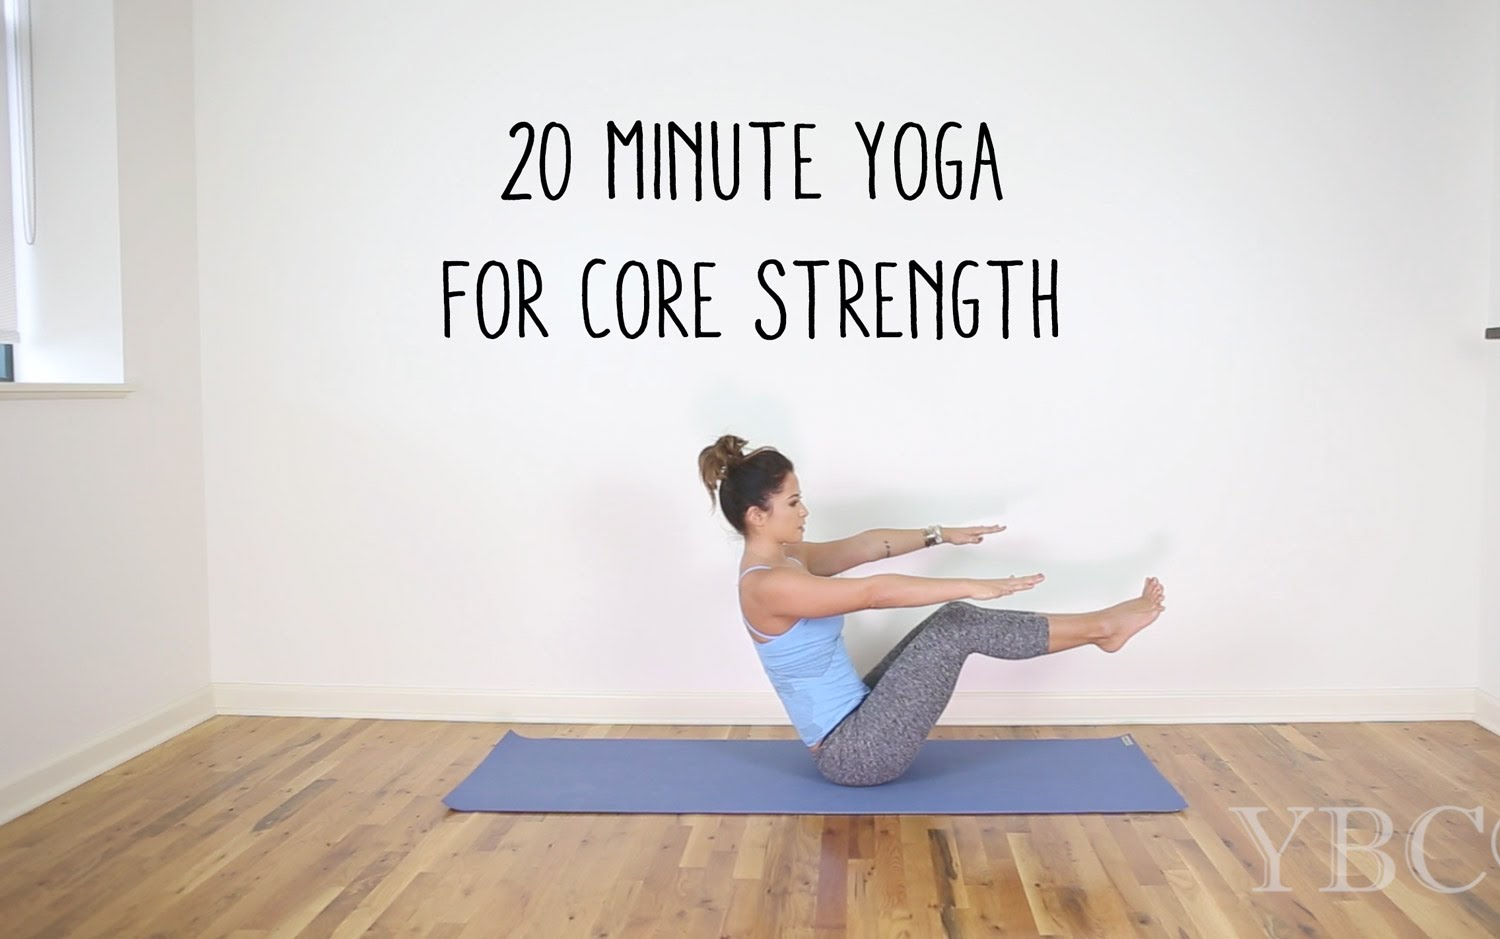 20 Minute Yoga for Core Strength